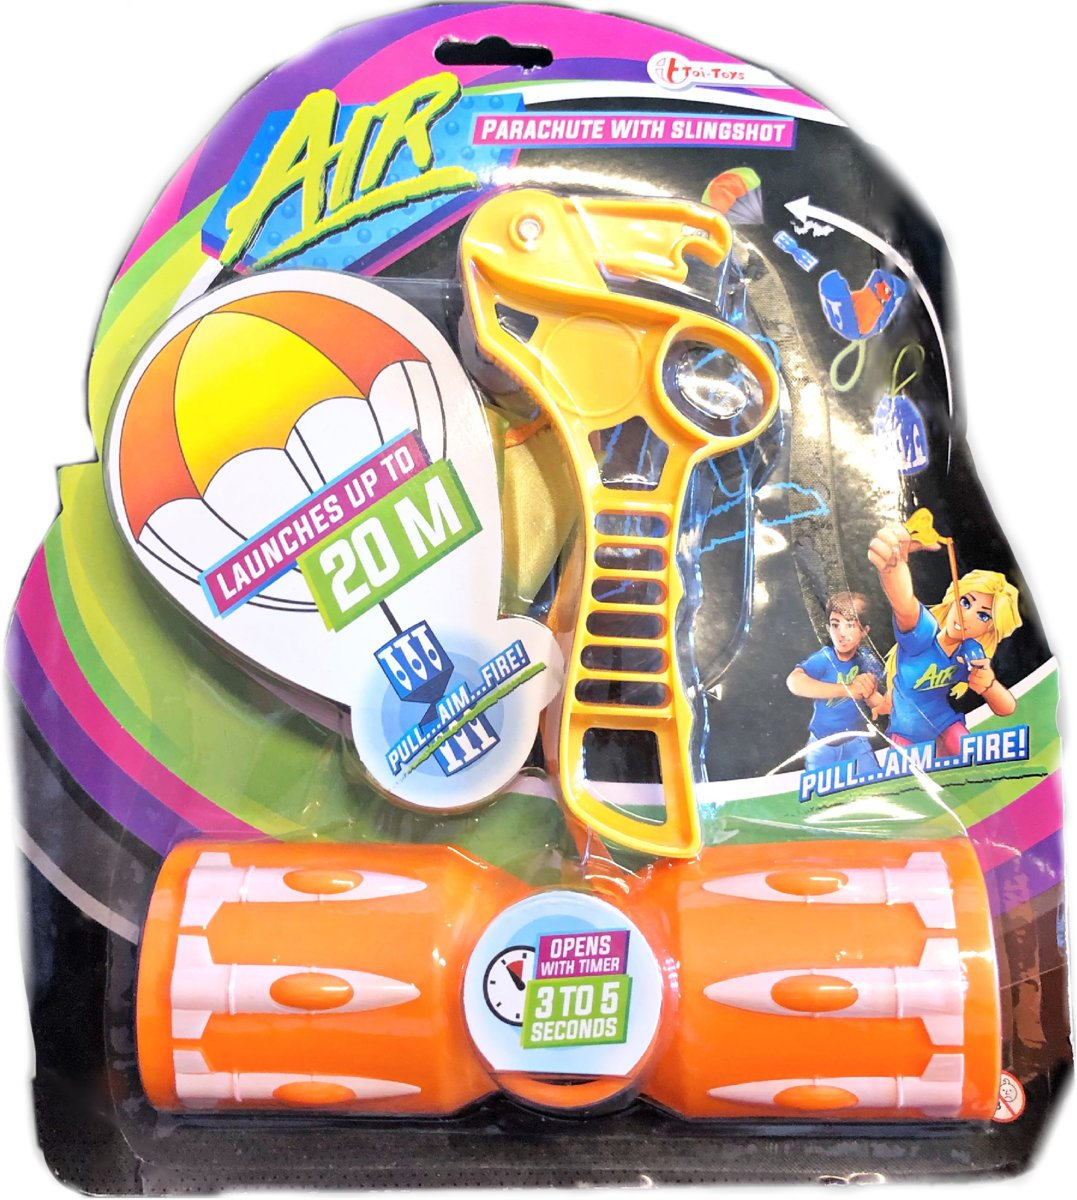 Toi-toys Air Parachute with Slingshot - Schiet speelgoed